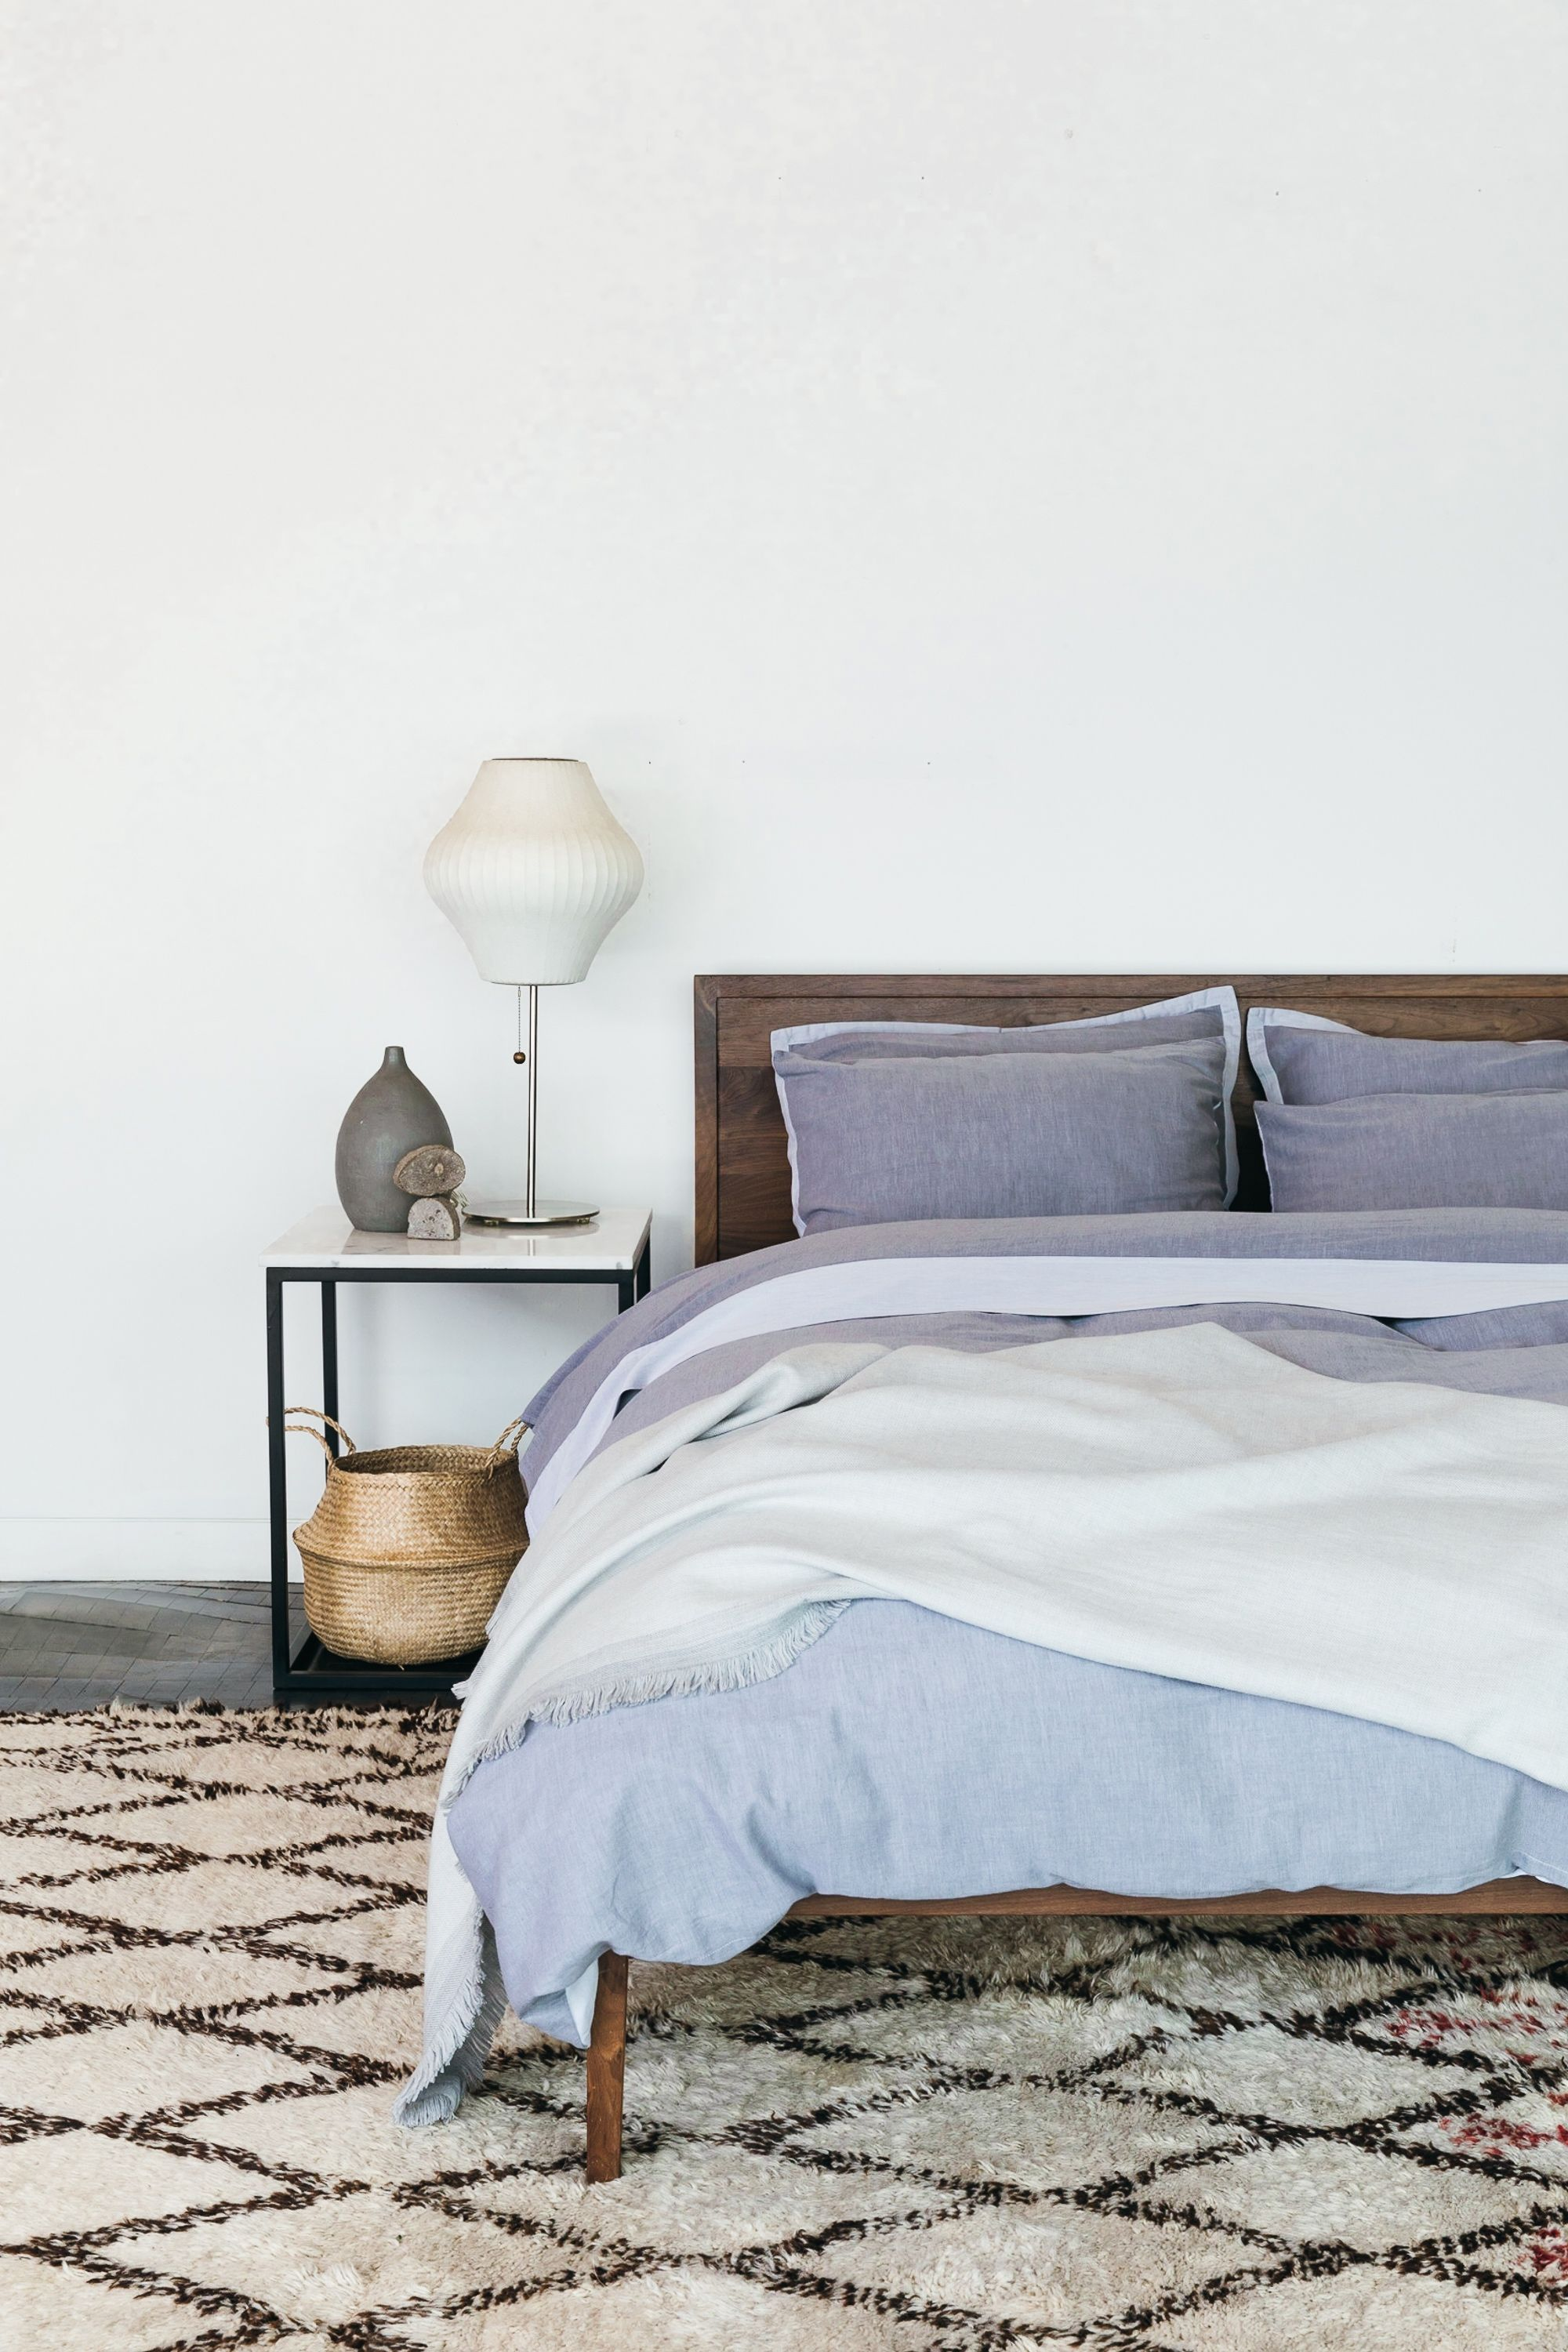 The Two Toned Washed Sateen Duvet Cover Set In Pewter Adds Design Interest And Color Contrast While Maintaining A Decoracao De Interiores Interiores Decoracao